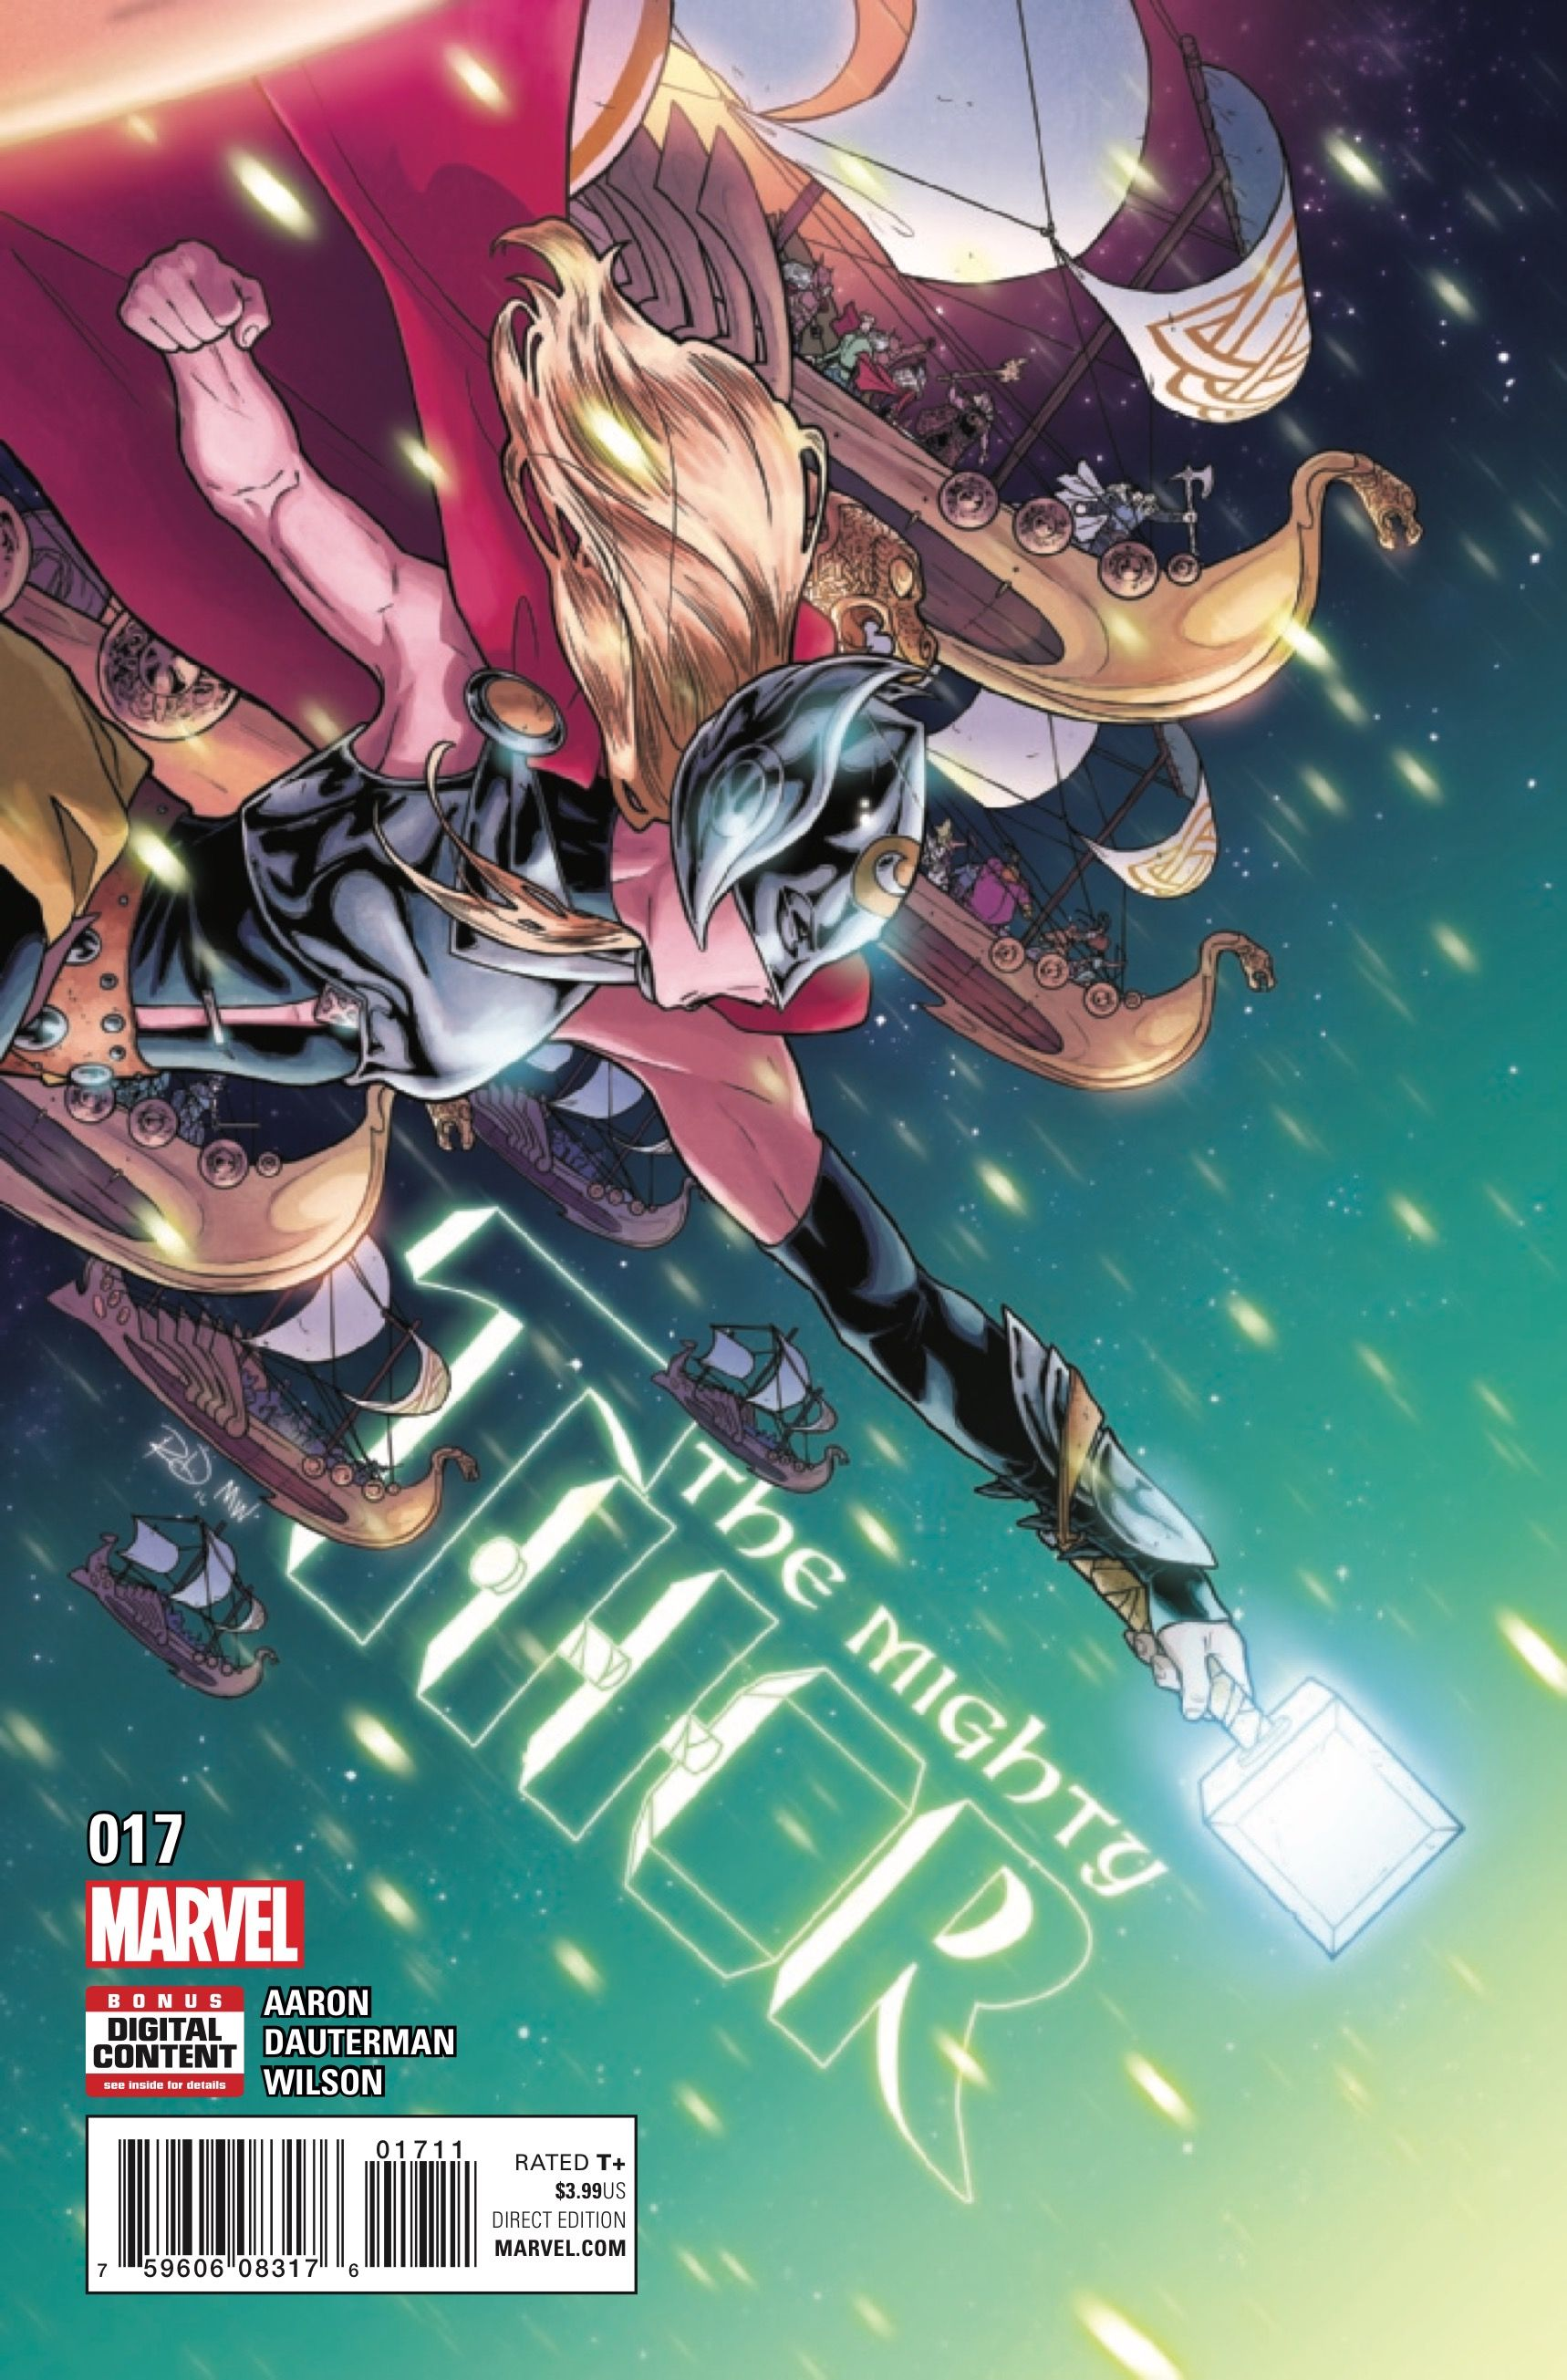 MIGHTY THOR (2015) #17 Published: March 15, 2017 Rating: Rated T+ Writer: Jason Aaron Penciller: Russell Dauterman Colorist: Matthew Wilson Cover Artist: Russell Dauterman The heavens rumble as the war between Asgard and the Shi'ar tears through space. Meanwhile, the Challenge of the Gods... Asgard, Jason Aaron, Marvel, Marvel Comics, Midgard, Mighty Thor, previews, Russell Dauterman, Shi'ar, Thor